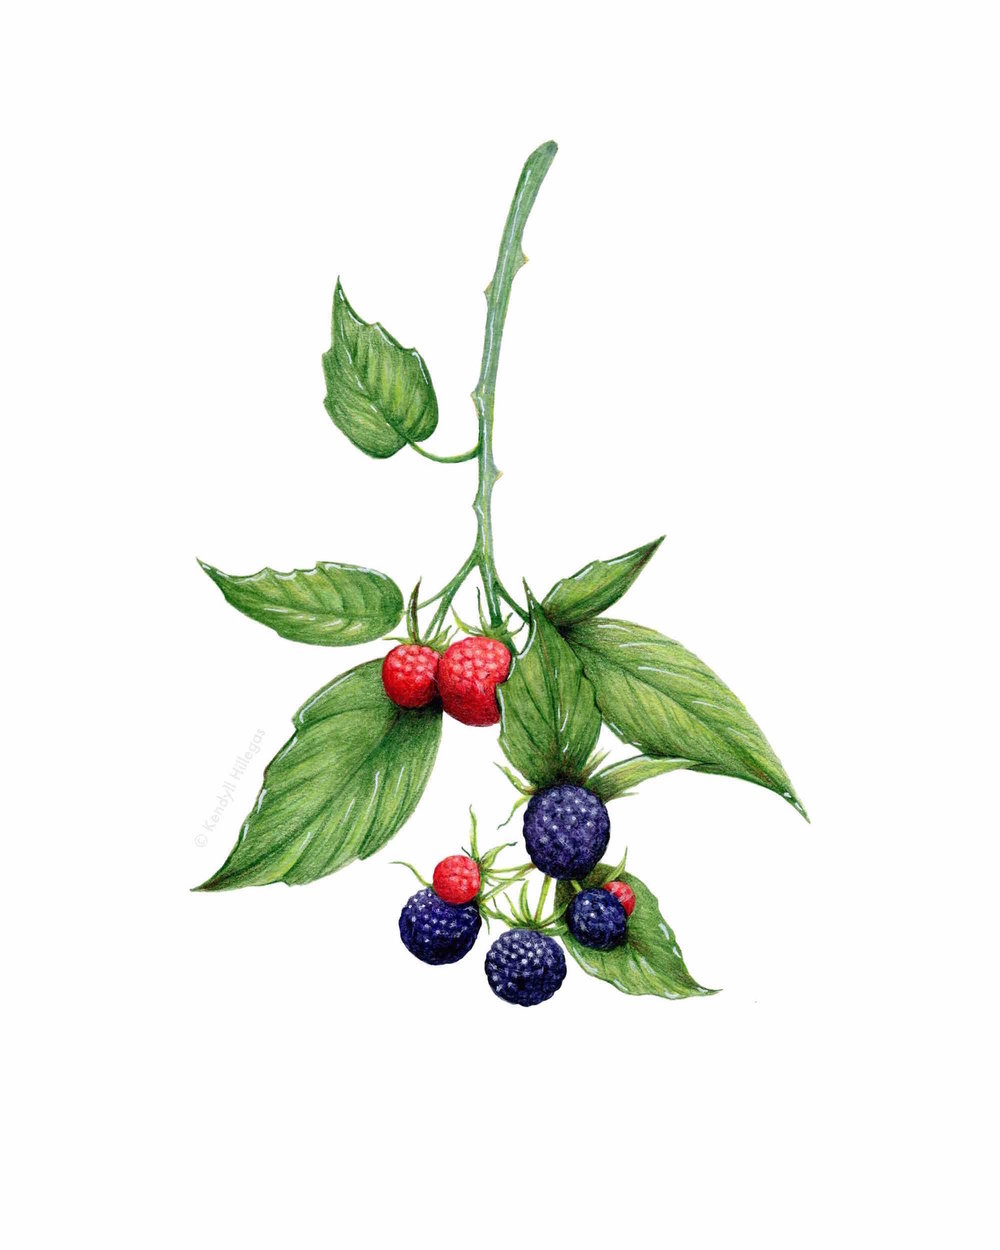 Blackberry Branch Illustration